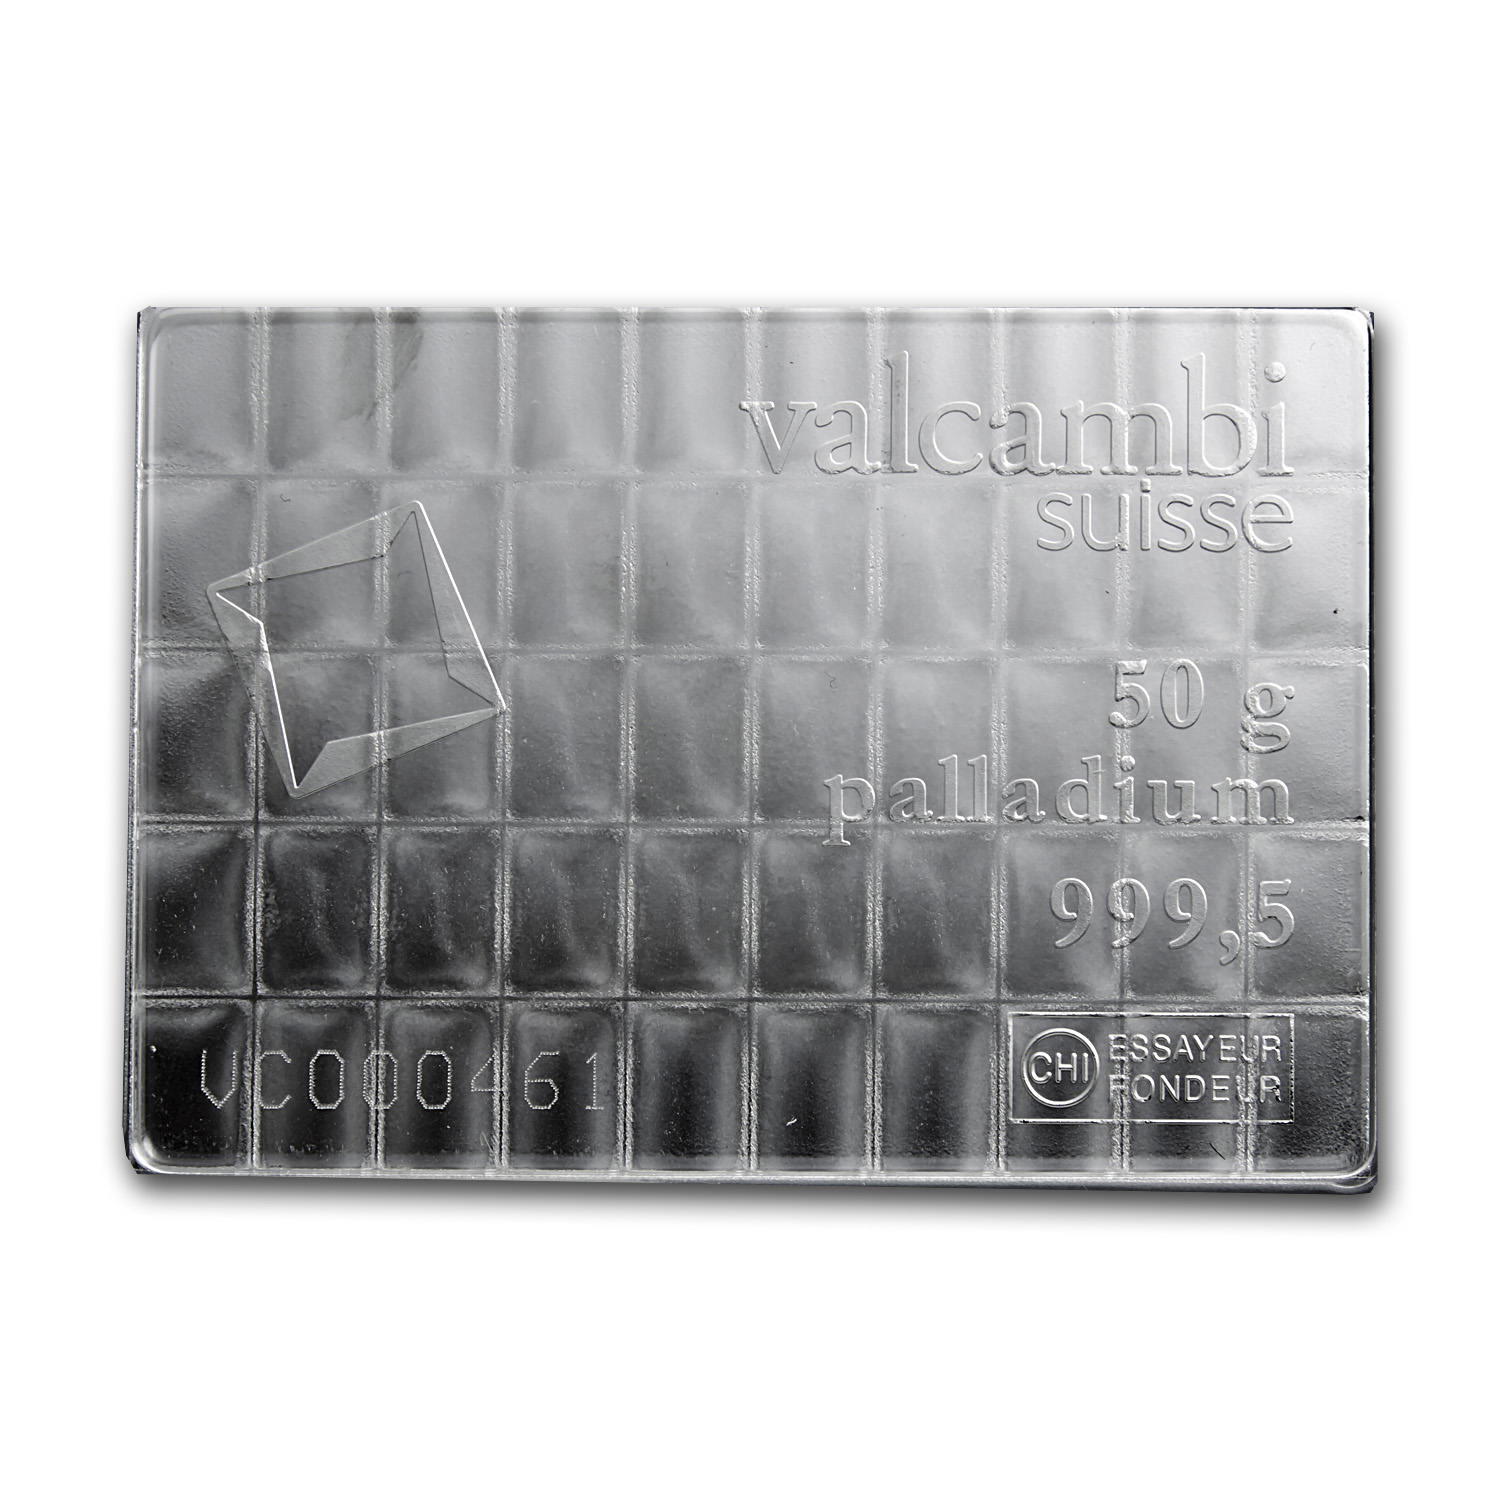 50x 1 gram Palladium CombiBar™ - Valcambi Suisse (In Assay)